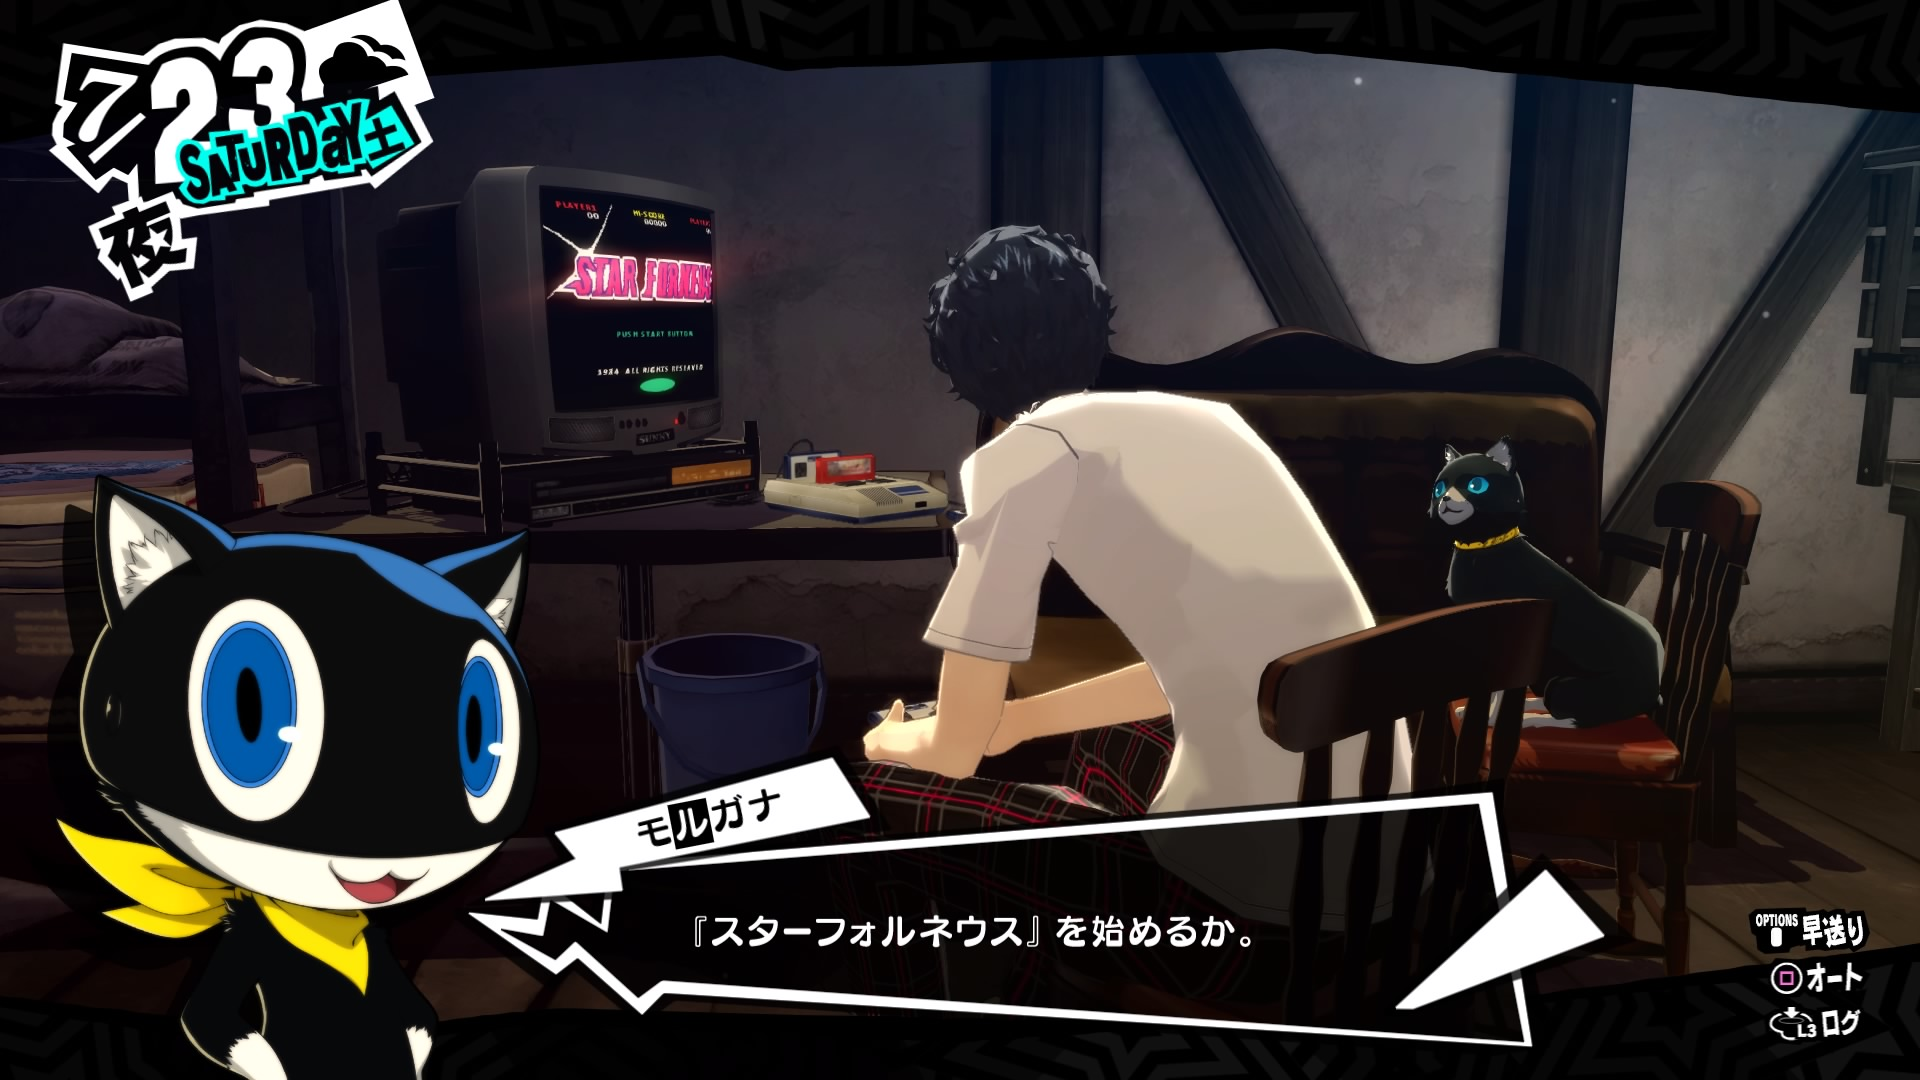 Persona 5 Royal retrogaming